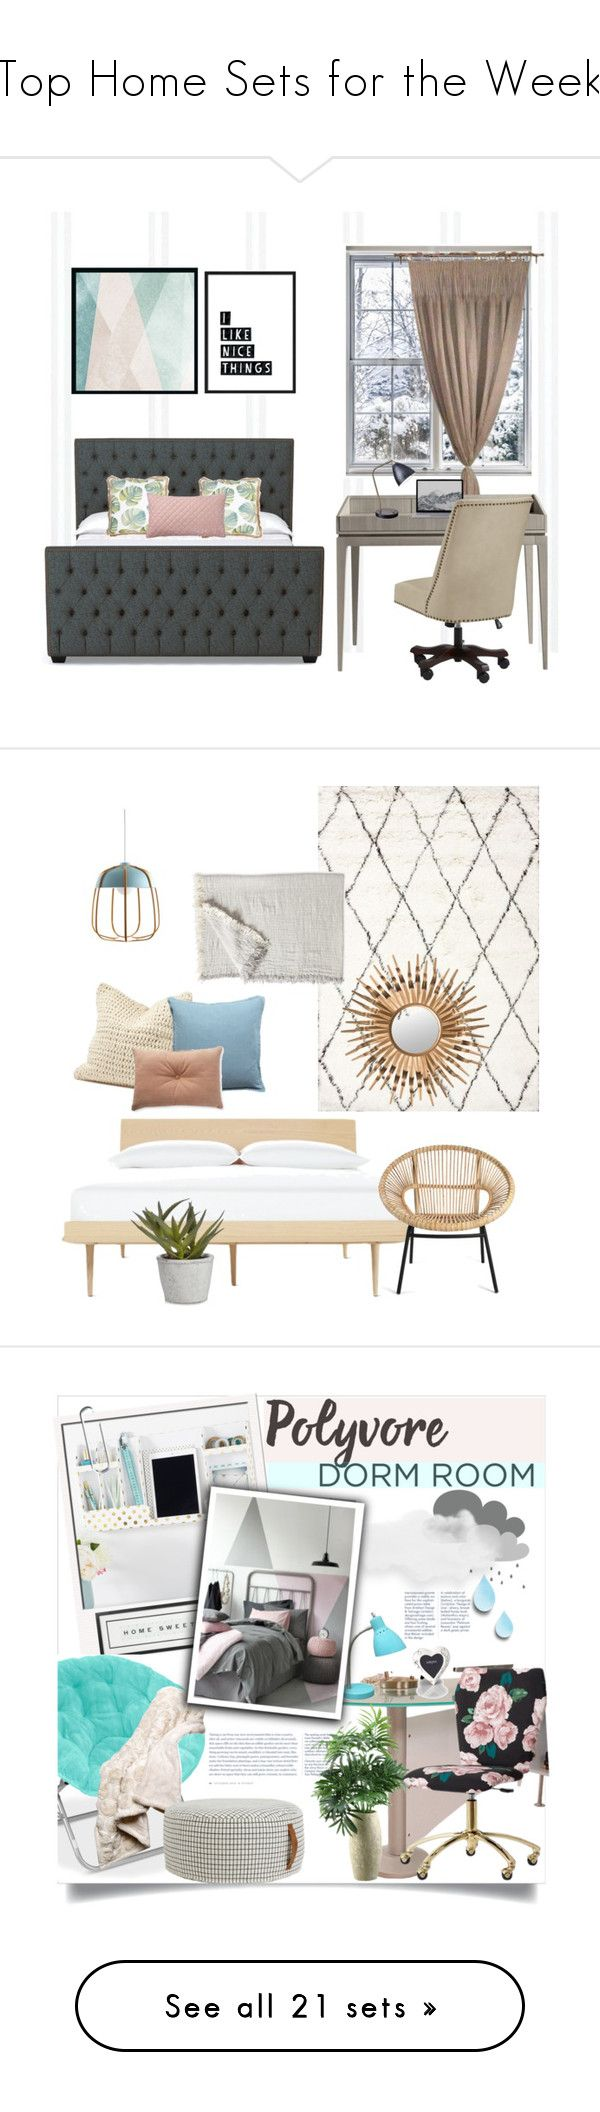 """""""Top Home Sets for the Week"""" by polyvore ❤ liked on Polyvore featuring interior, interiors, interior design, home, home decor, interior decorating, Pottery Barn, Sandberg Furniture, Anthropologie and Pier 1 Imports"""